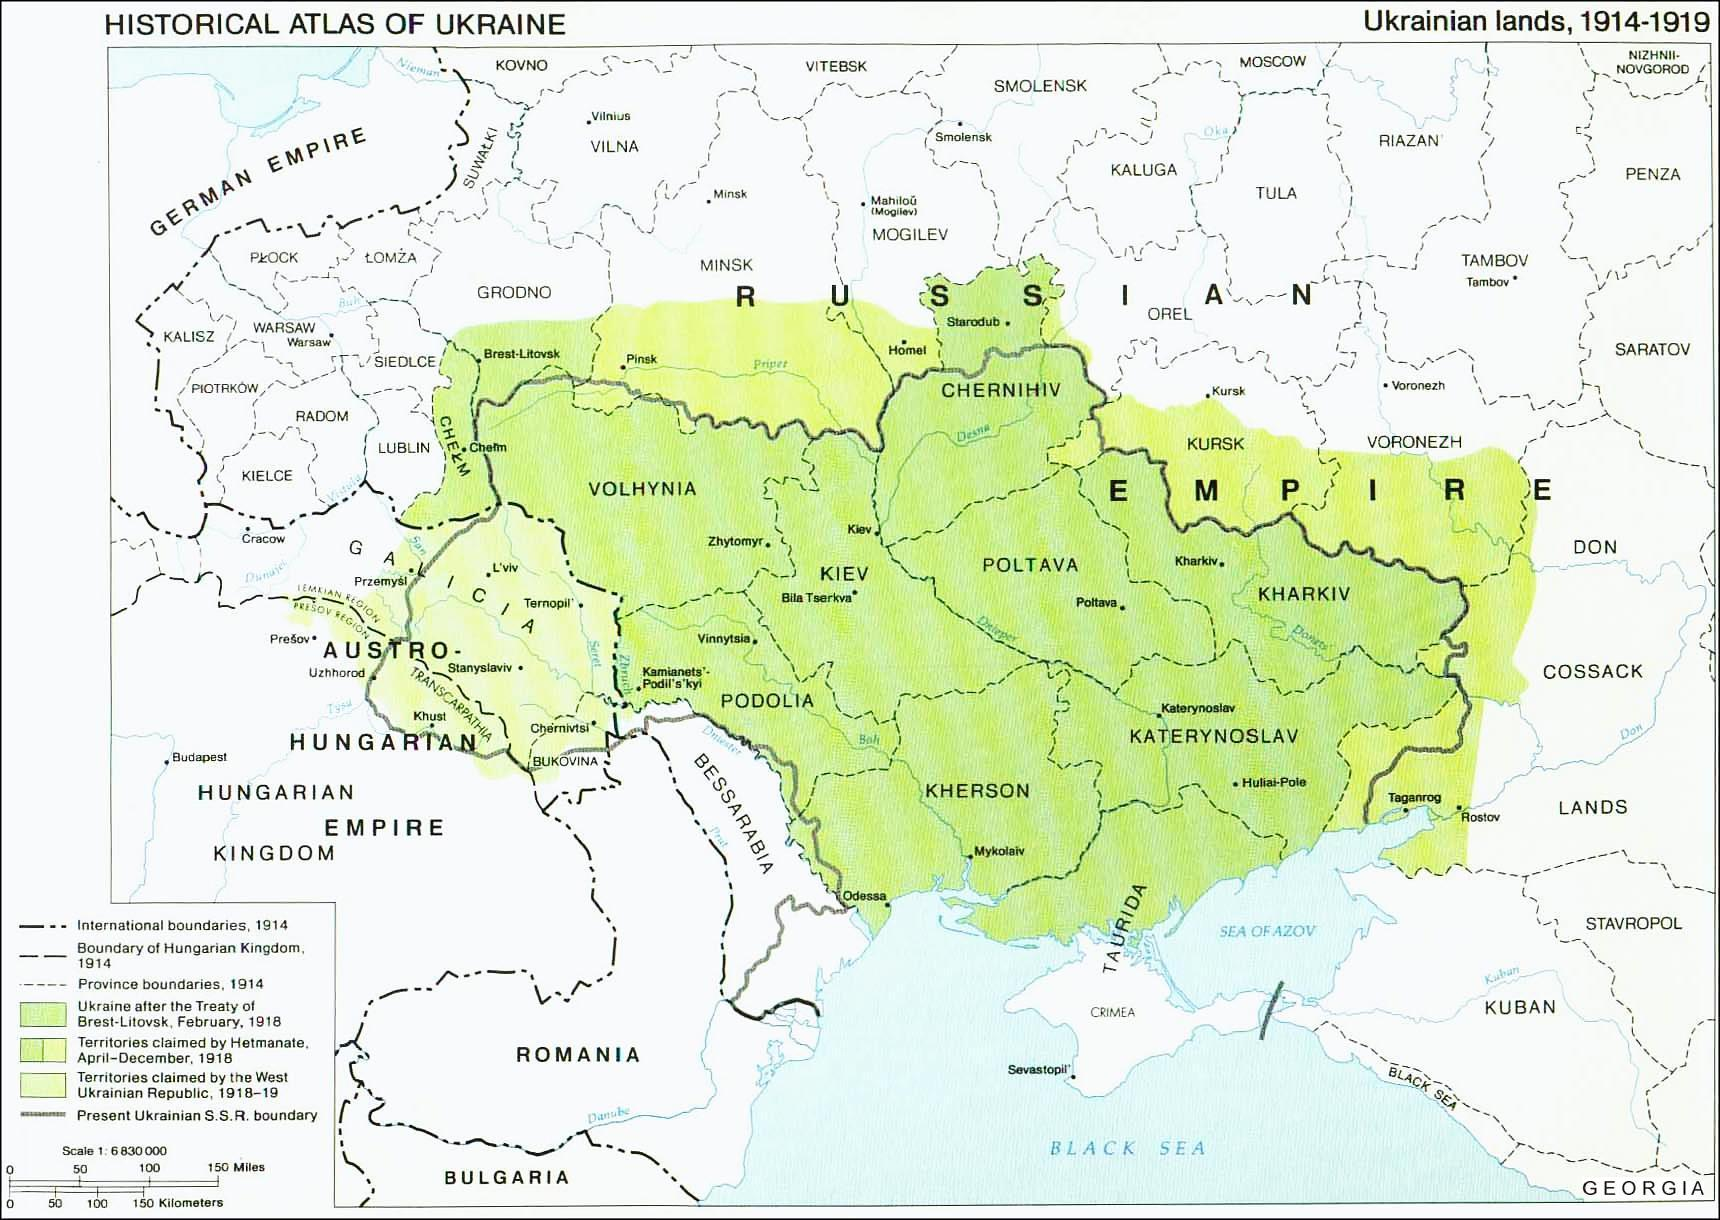 Historical Maps of Ukraine